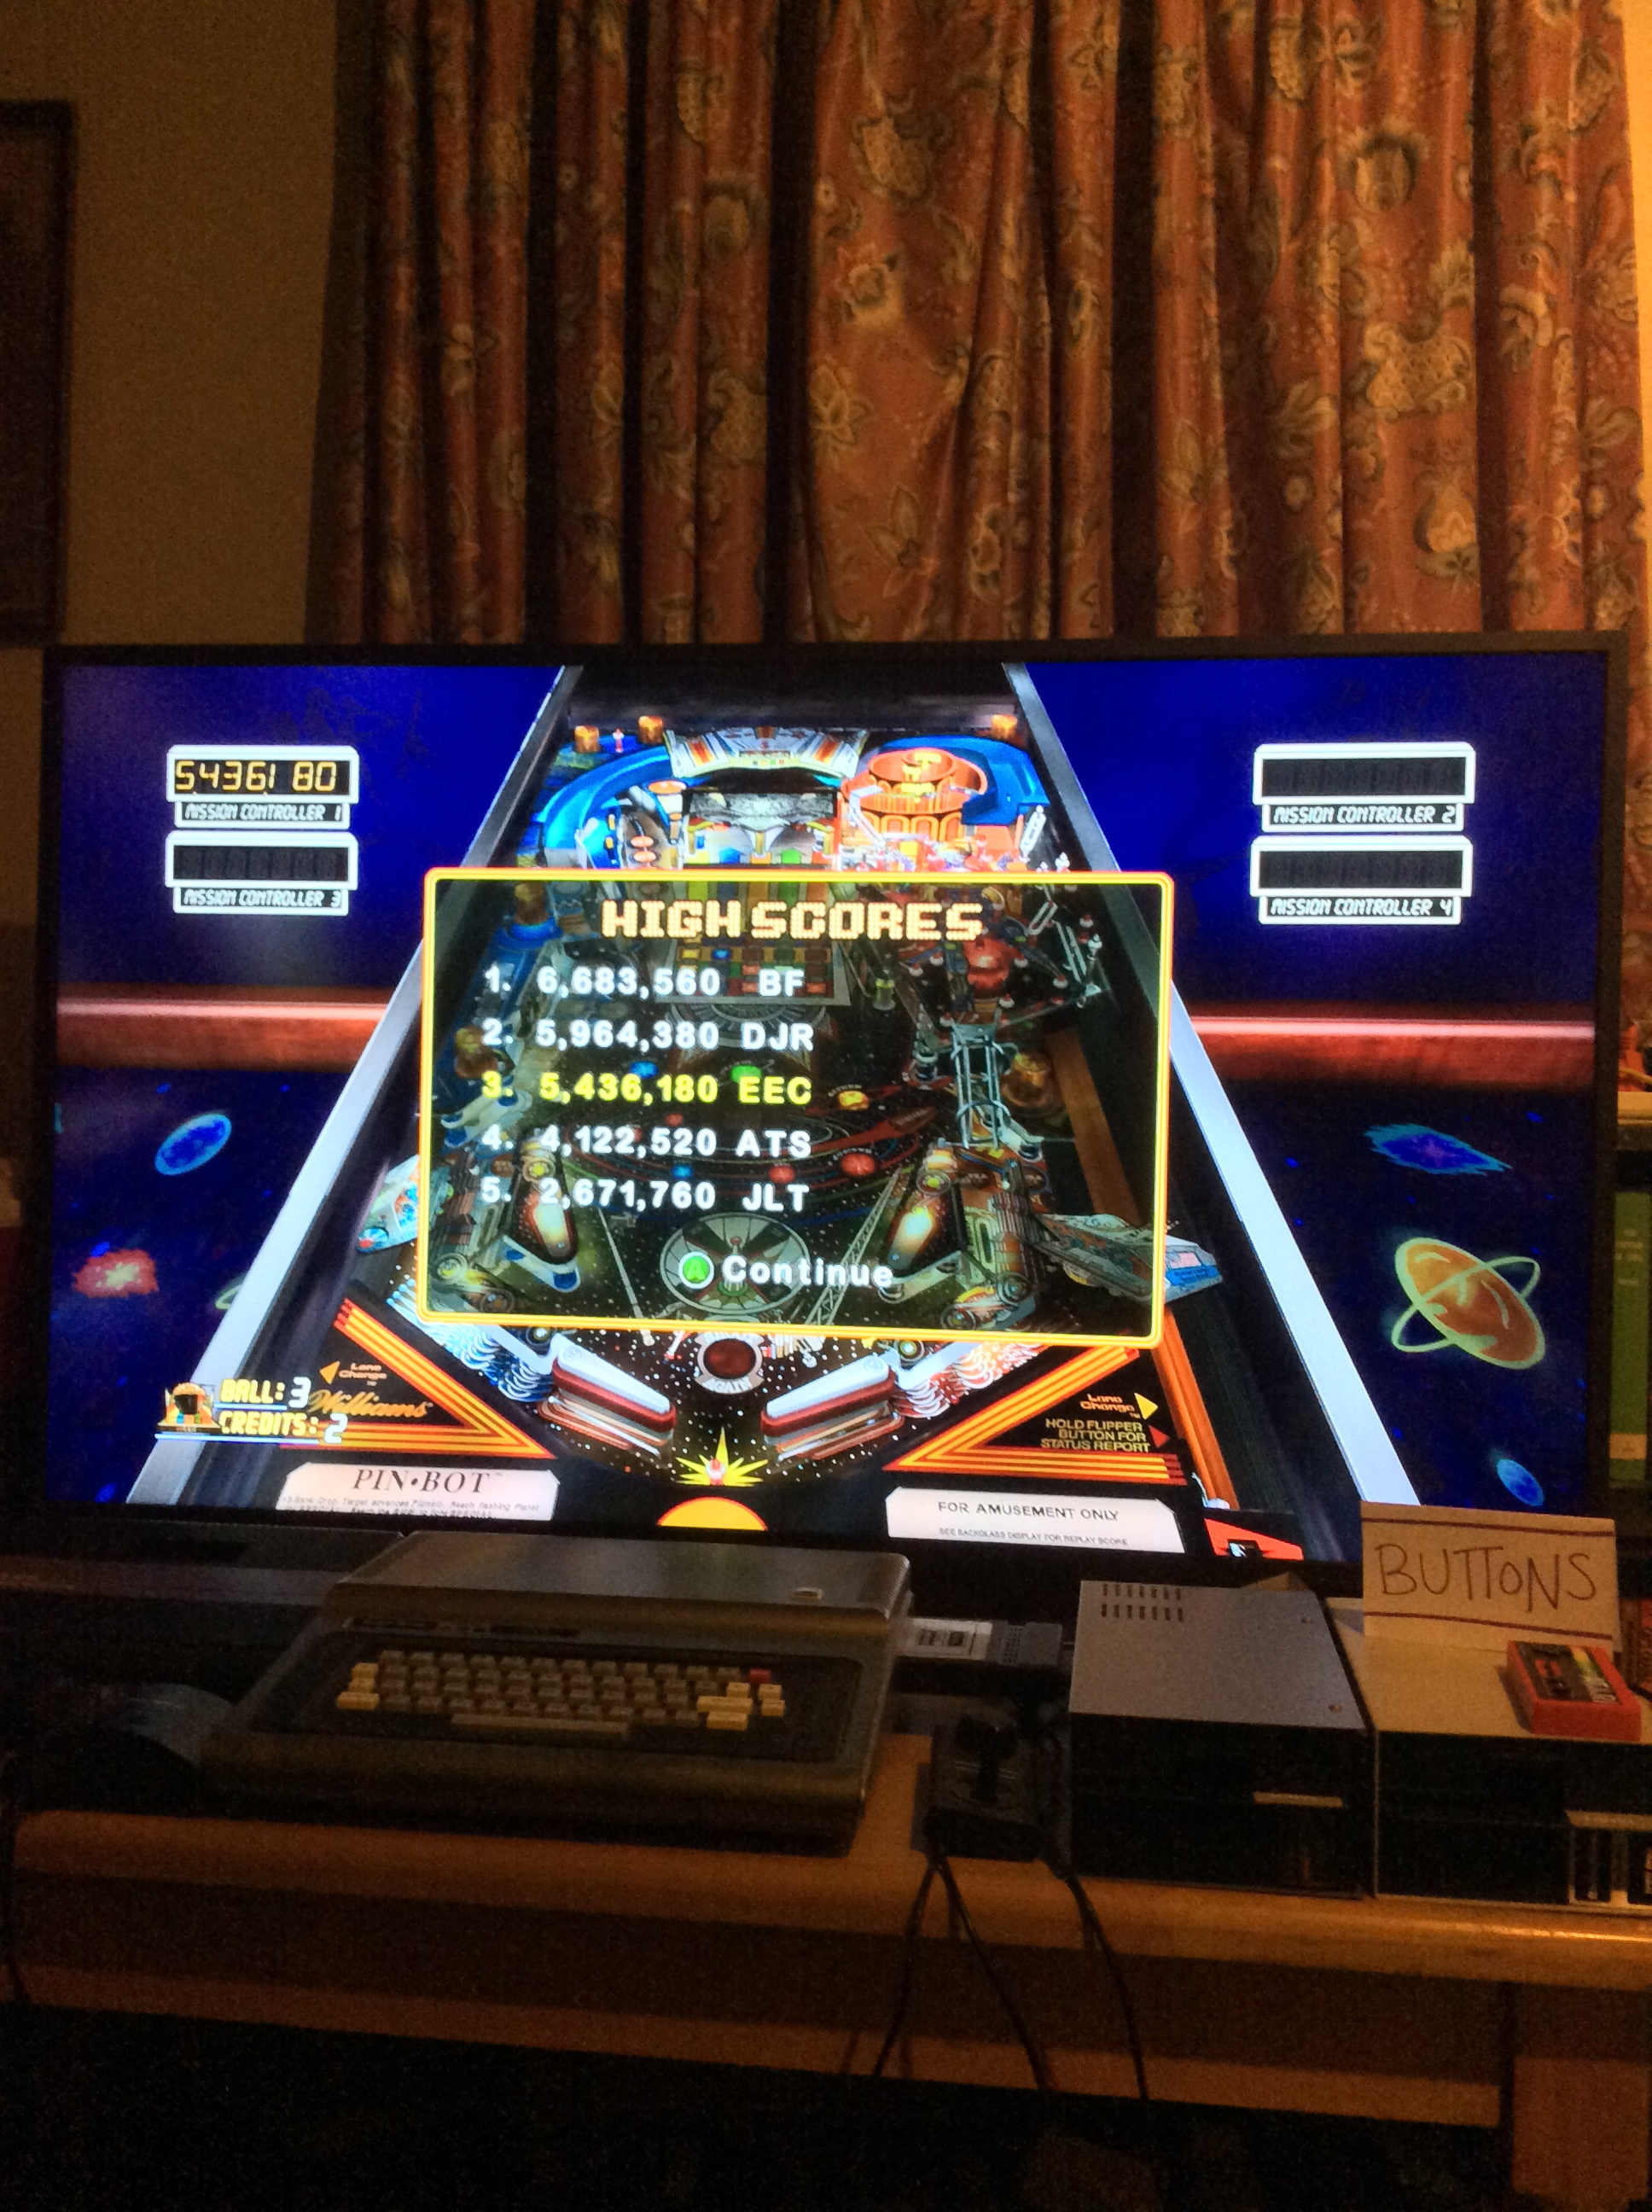 Pinball Hall of Fame: The Williams Collection: PIN•BOT 5,436,180 points